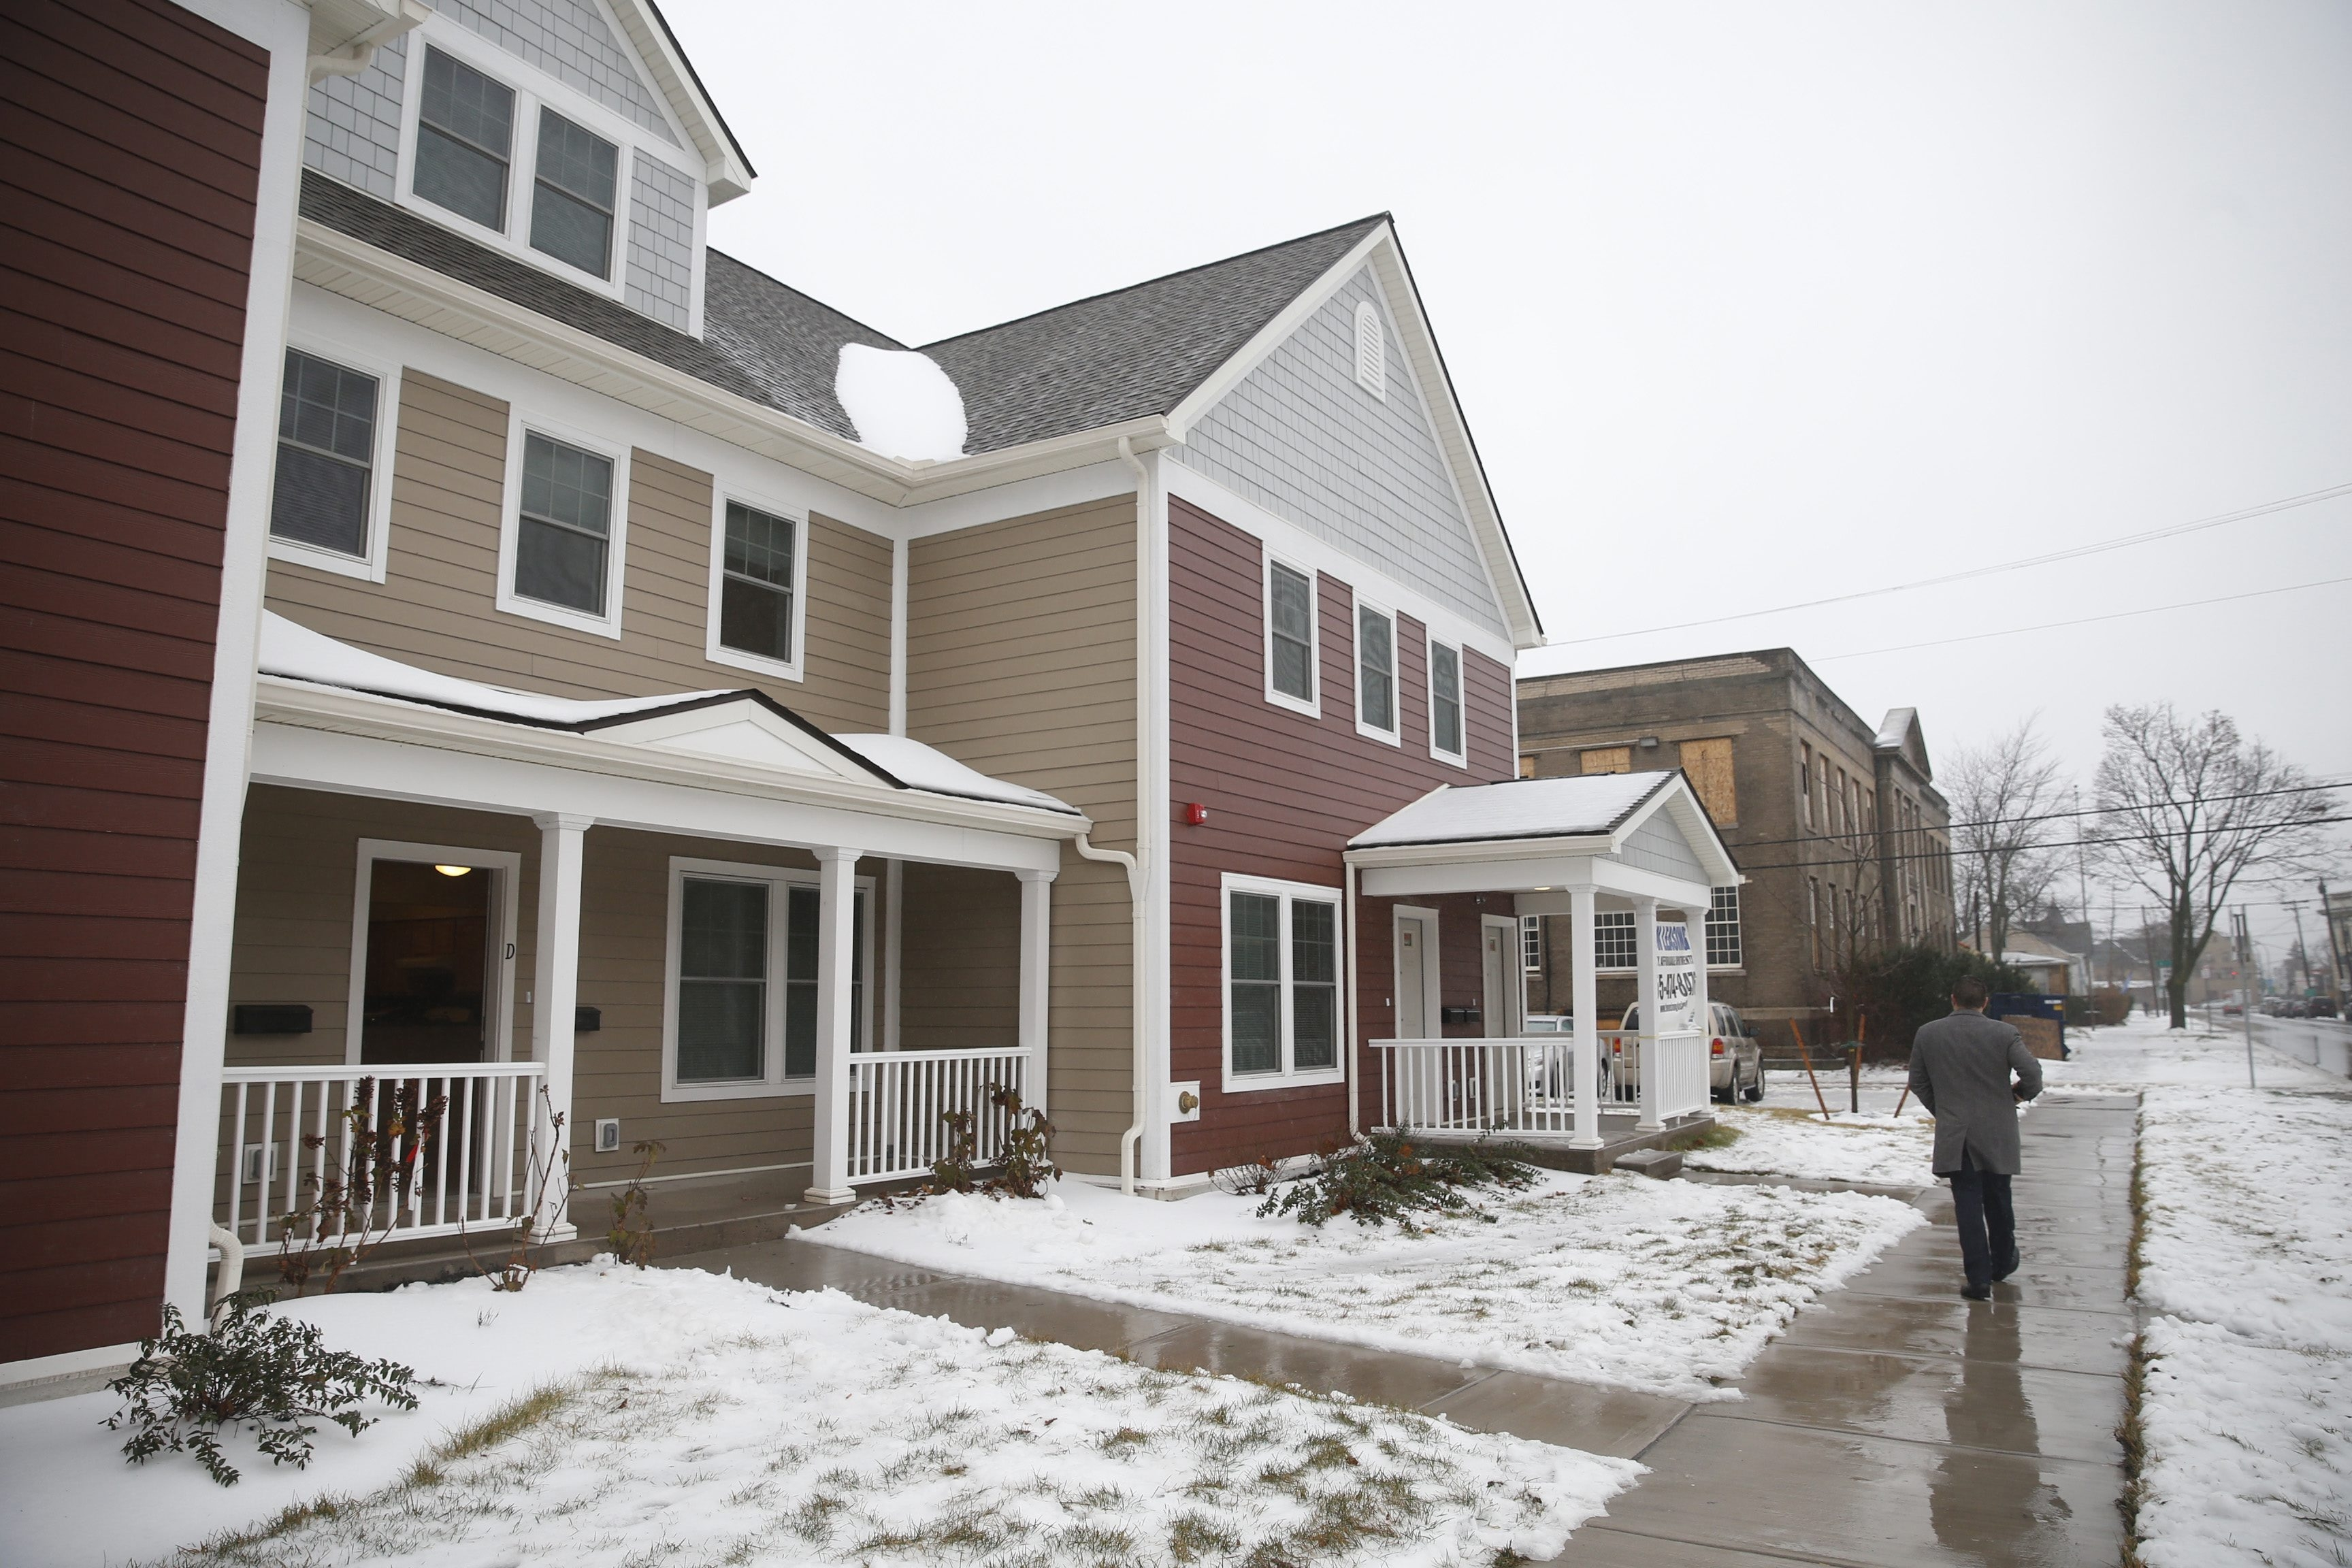 Part of the Walnut Avenue Homes project in Niagara Falls in January 2016. (Buffalo News file photo)